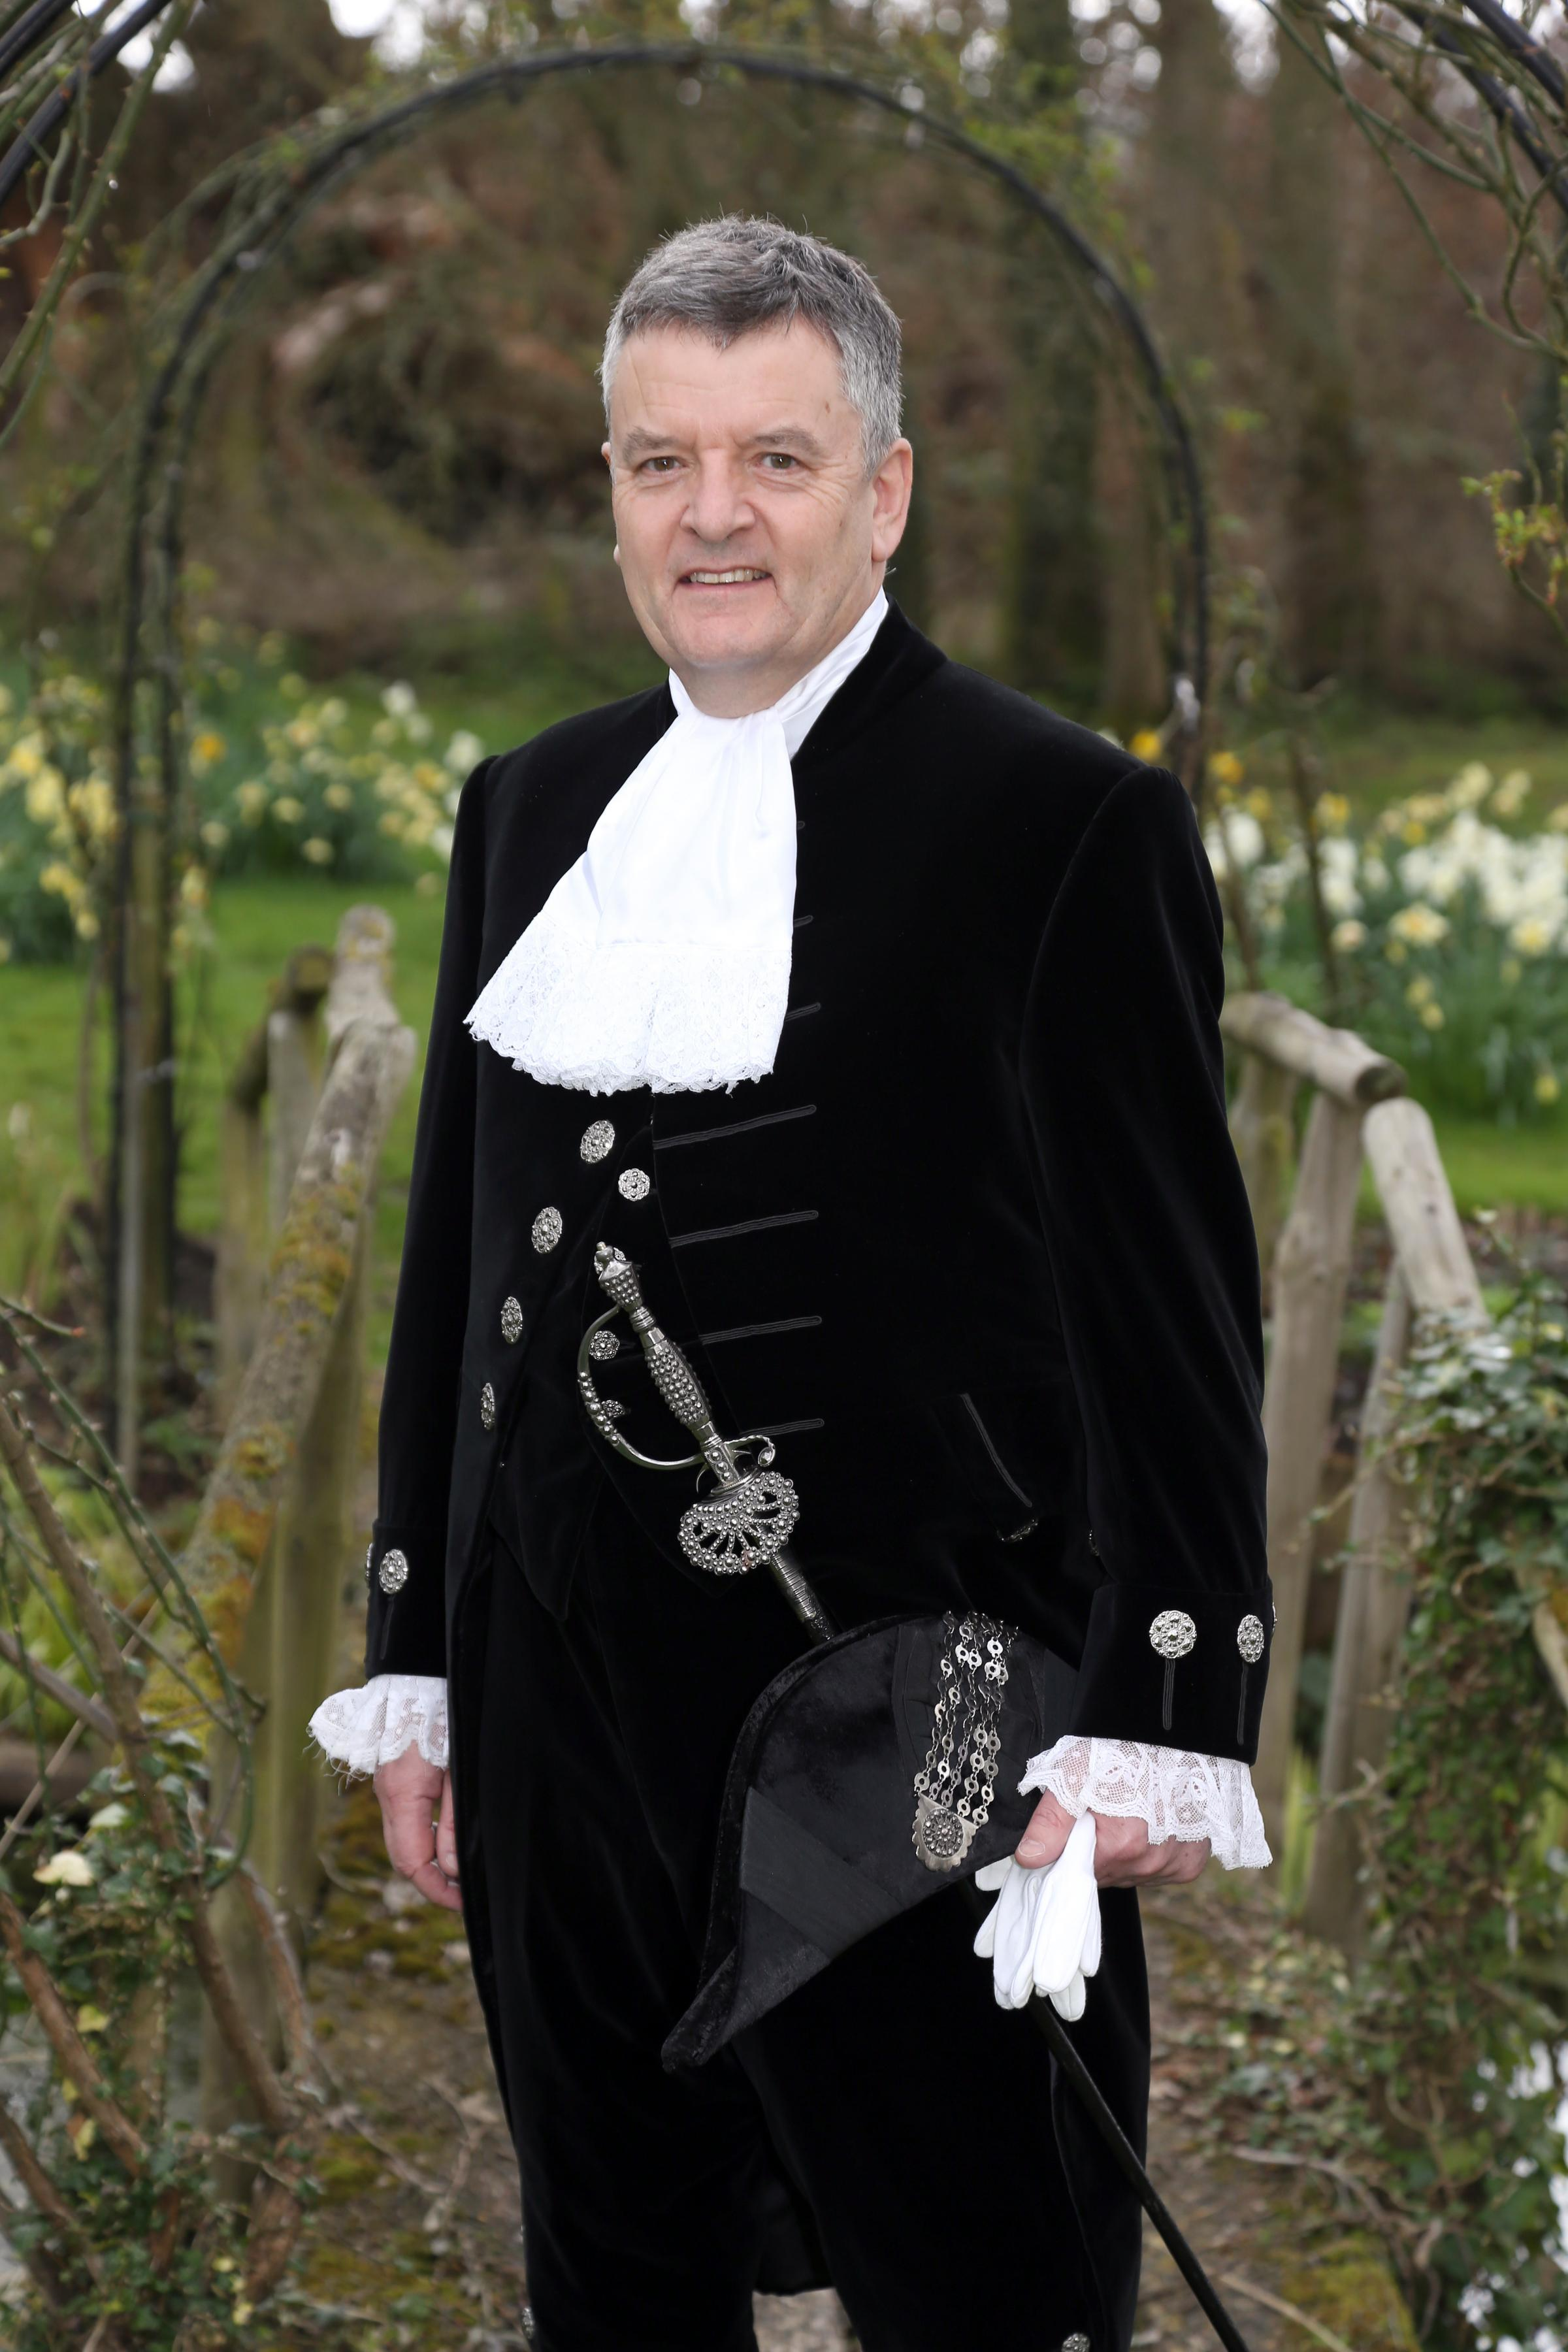 New high sheriff is appointed for Essex